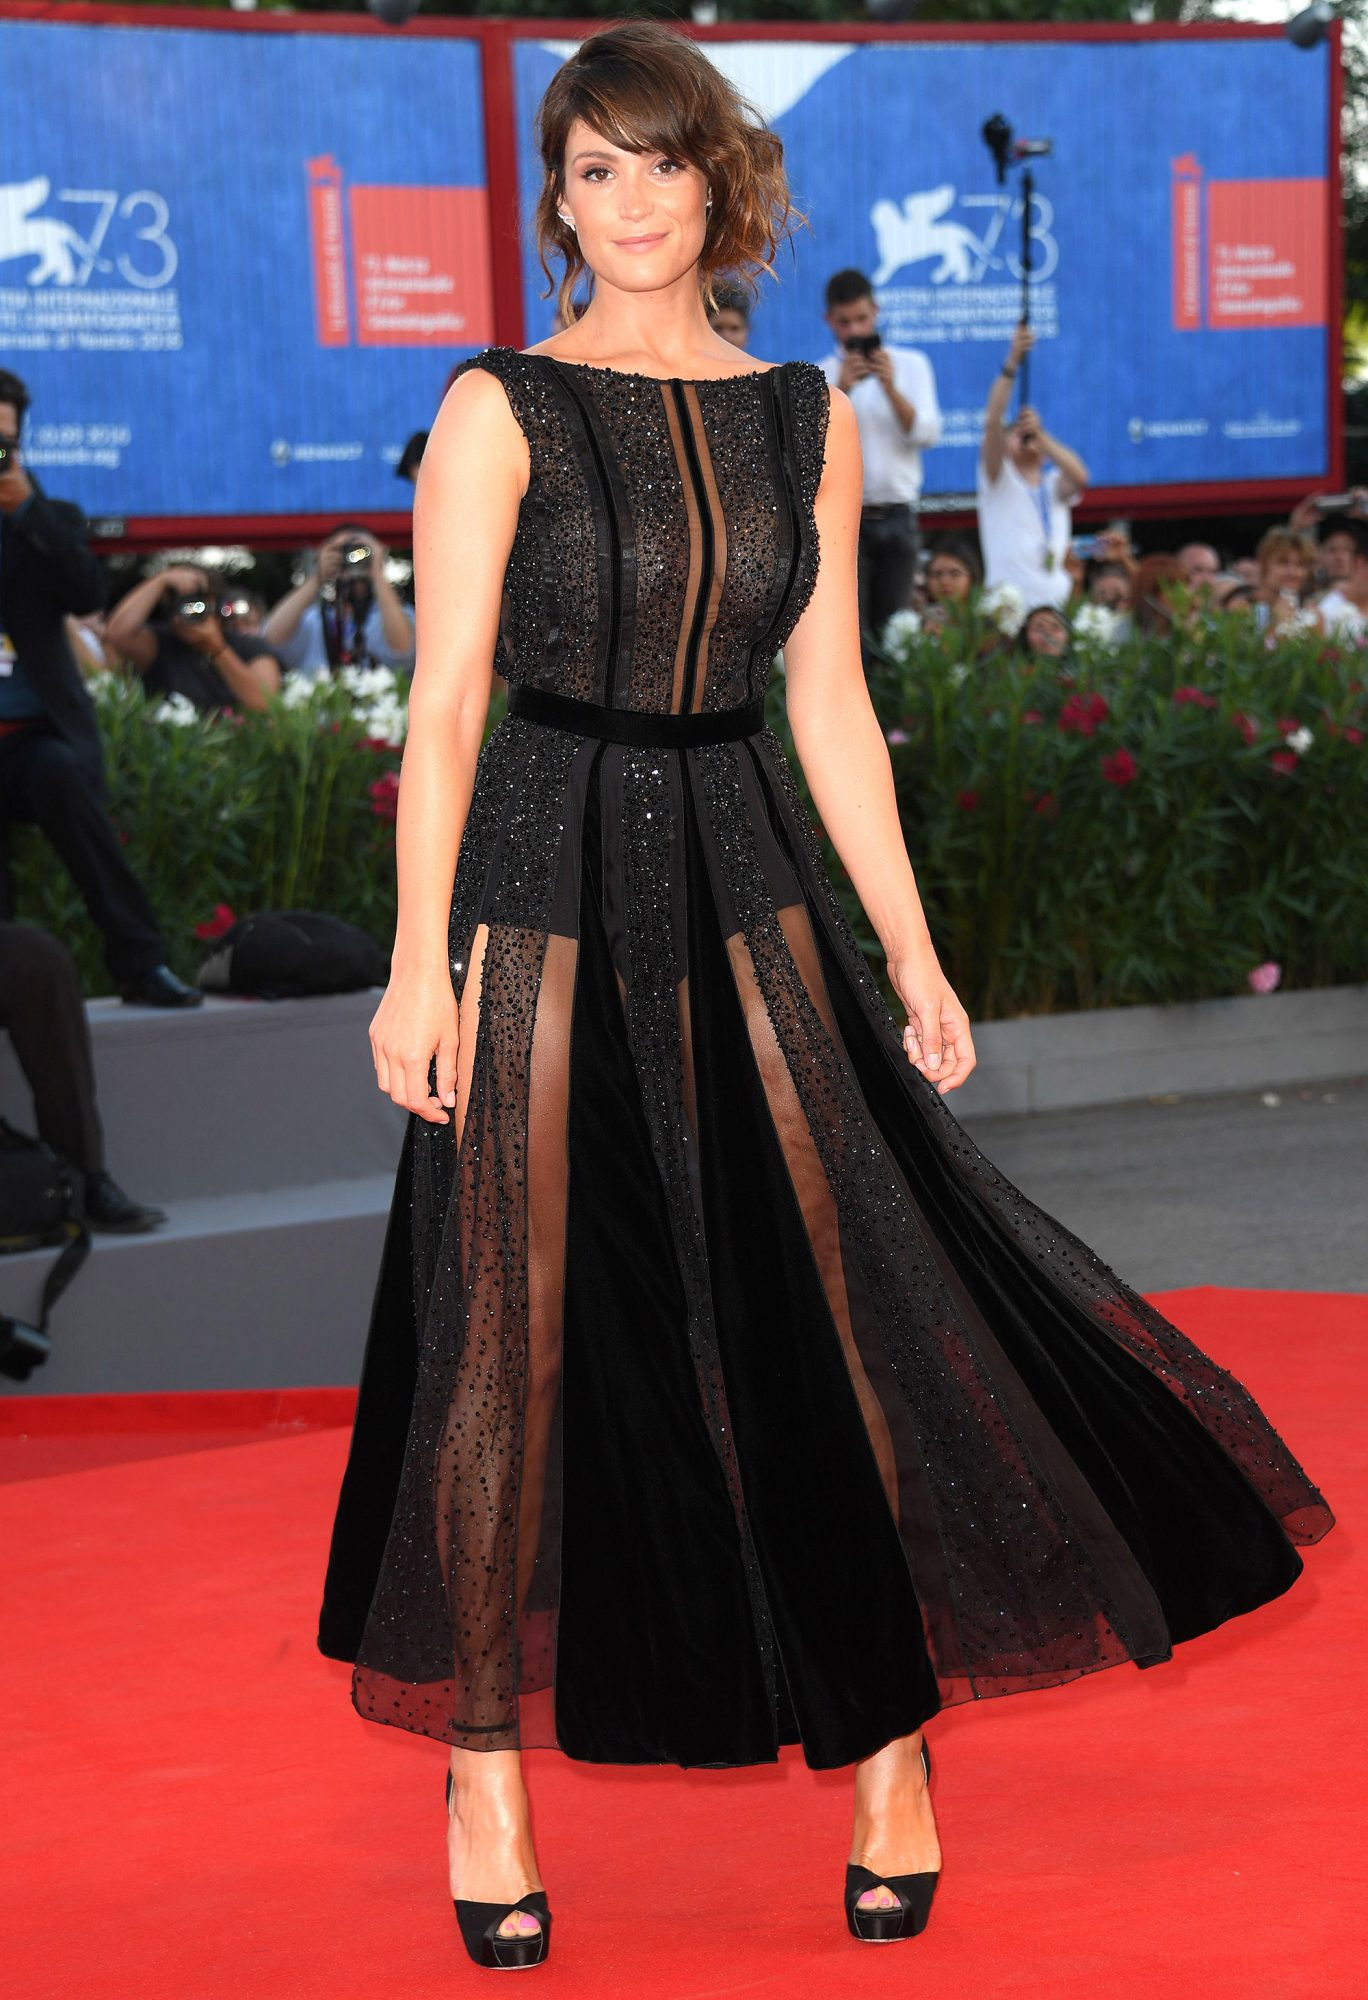 'The Young Pope' premiere, 73rd Venice Film Festival, Italy - 03 Sep 2016